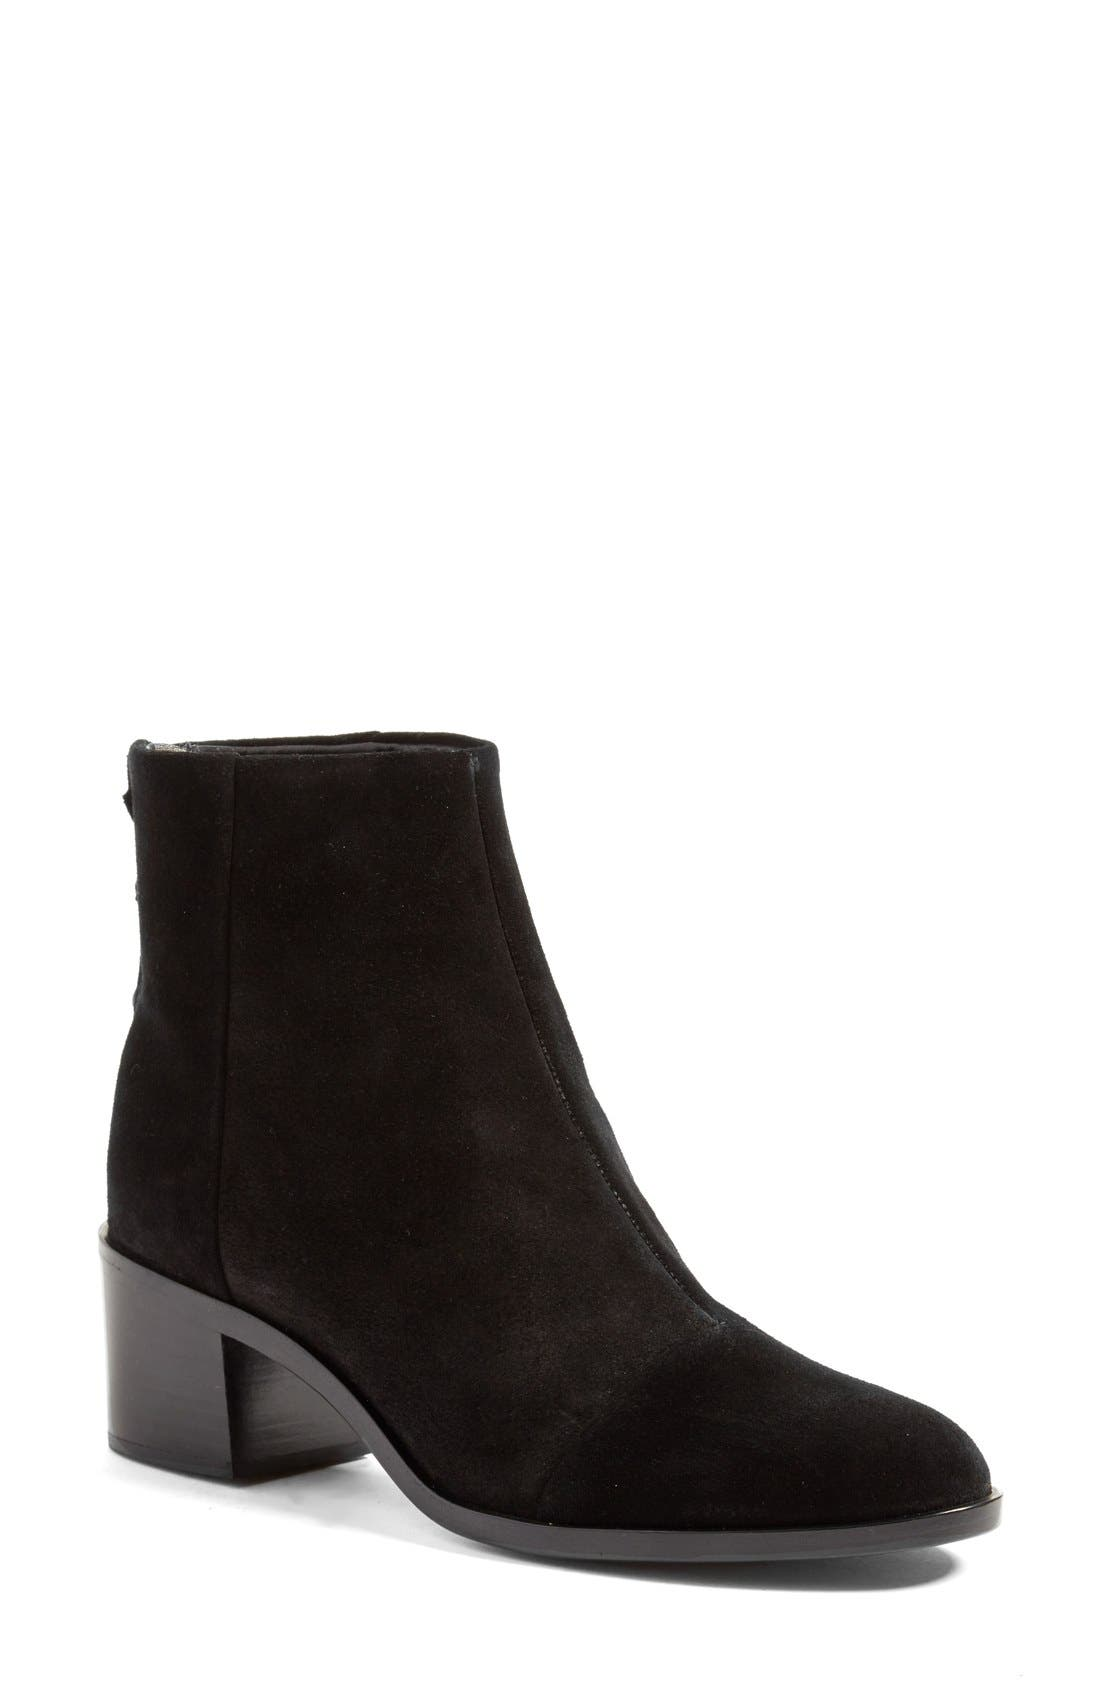 Alternate Image 1 Selected - rag & bone 'Ashby' Bootie (Women) (Nordstrom Exclusive)